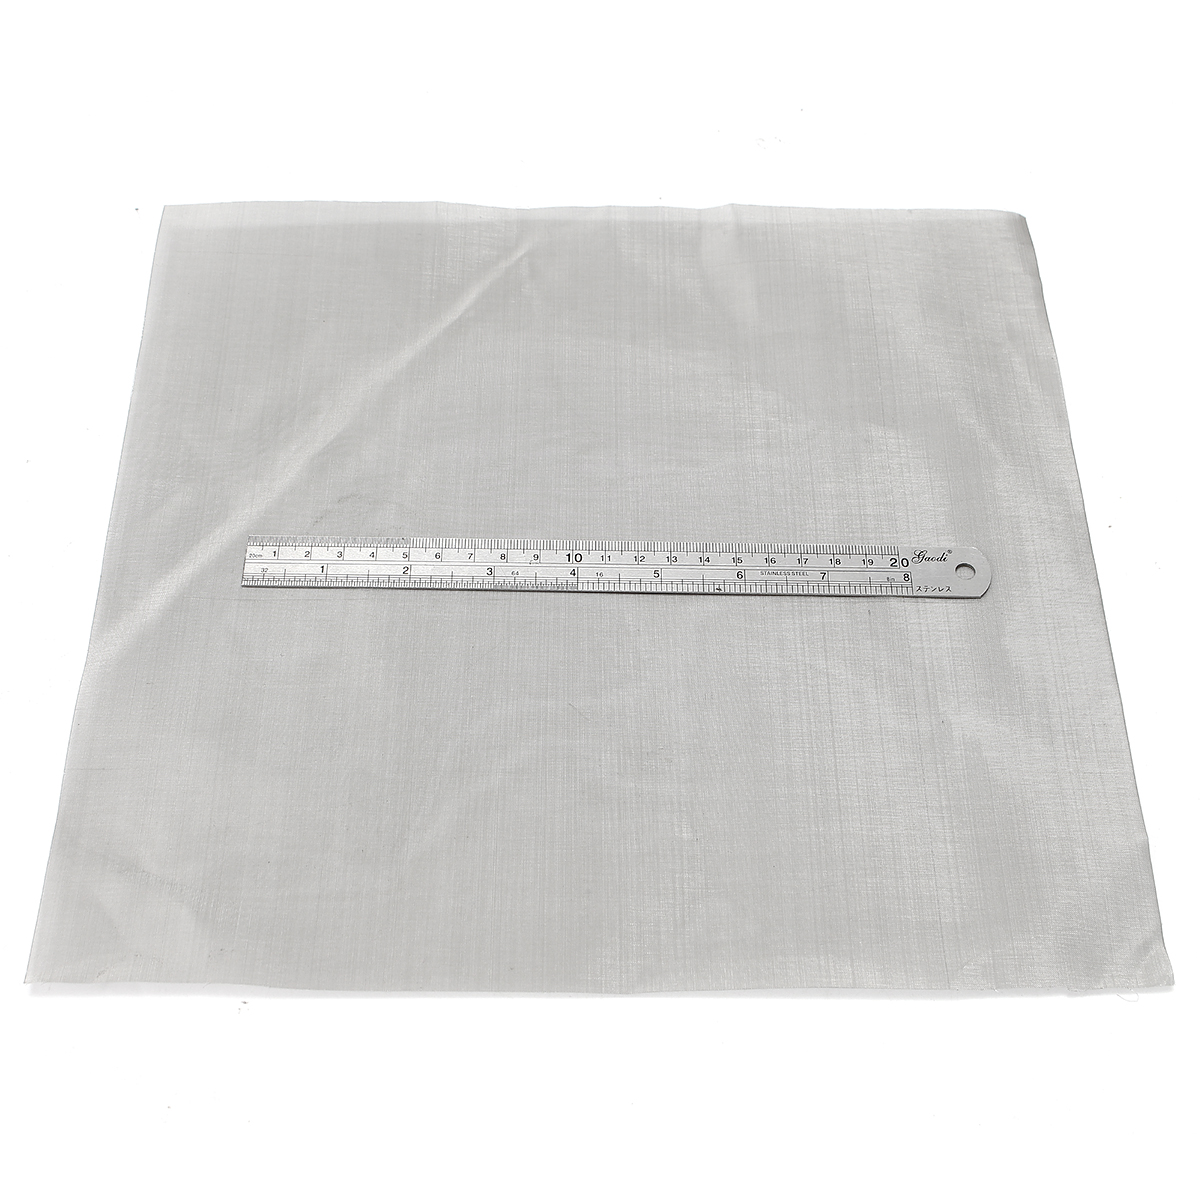 30x30cm Woven Wire Cloth Screen Stainless Steel 304 80 Mesh